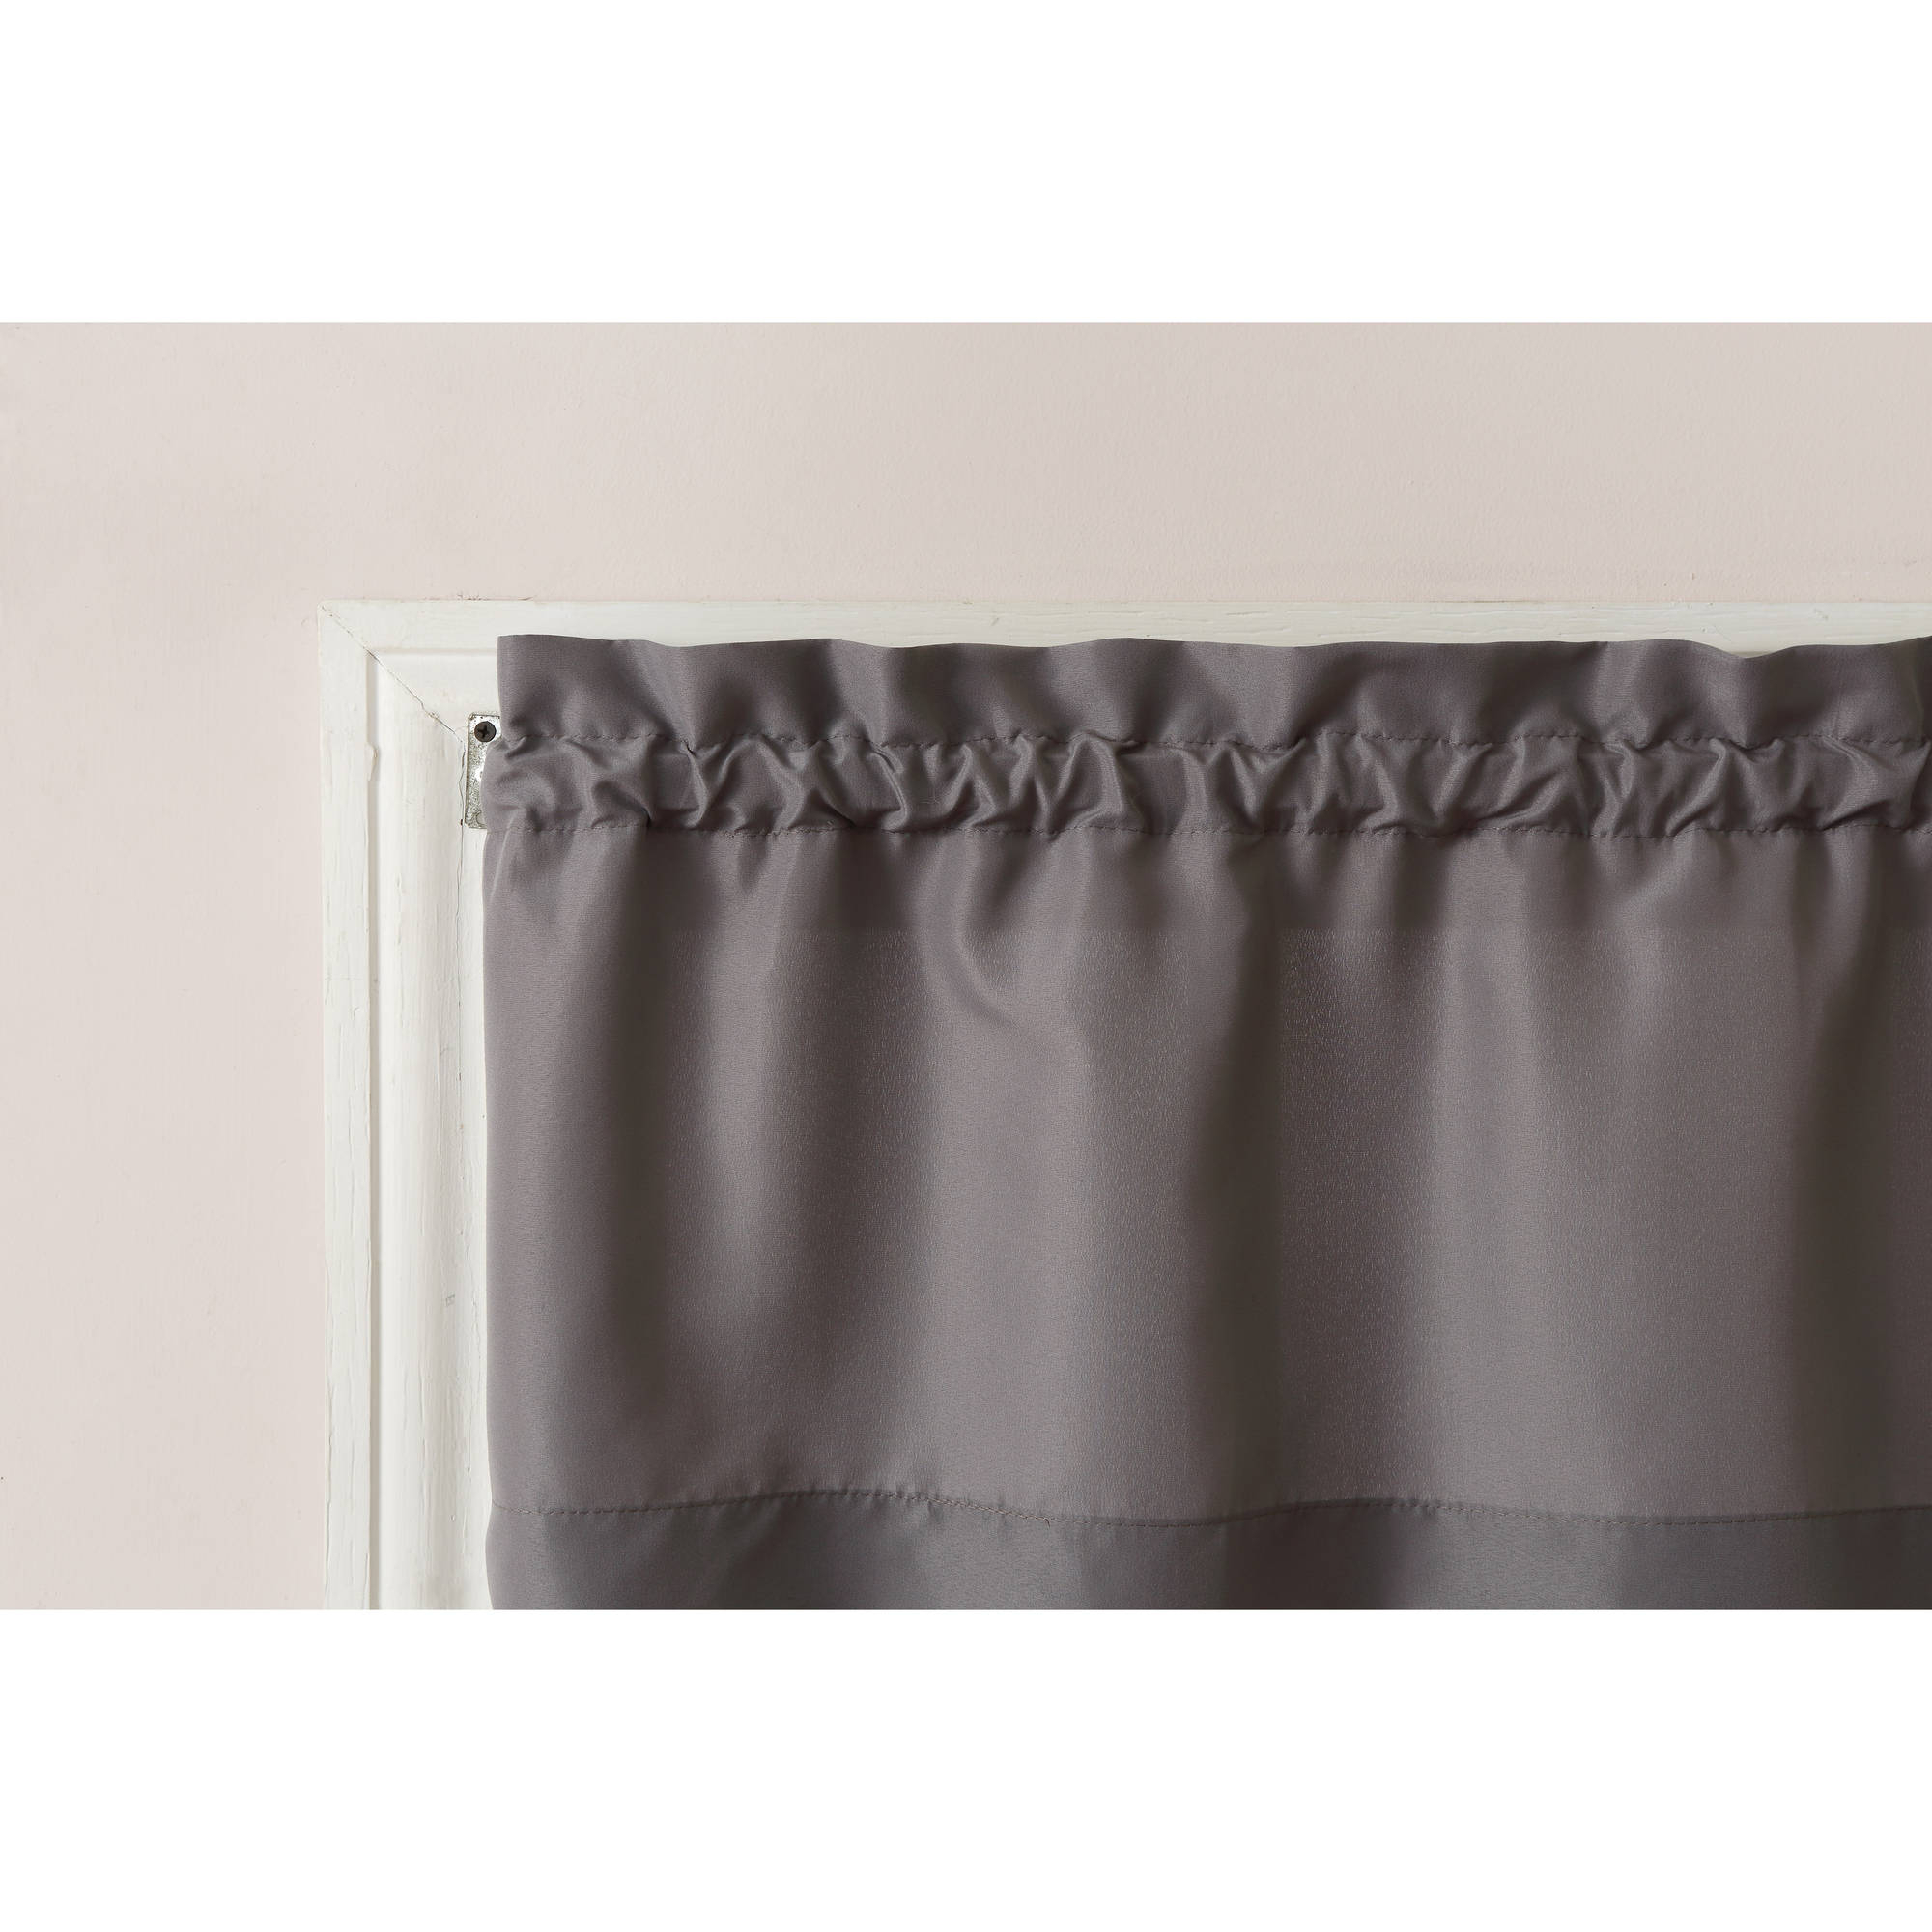 Mainstays Solid 3 Piece Kitchen Curtain Tier And Valance Set With Newest Solid Microfiber 3 Piece Kitchen Curtain Valance And Tiers Sets (Gallery 18 of 20)